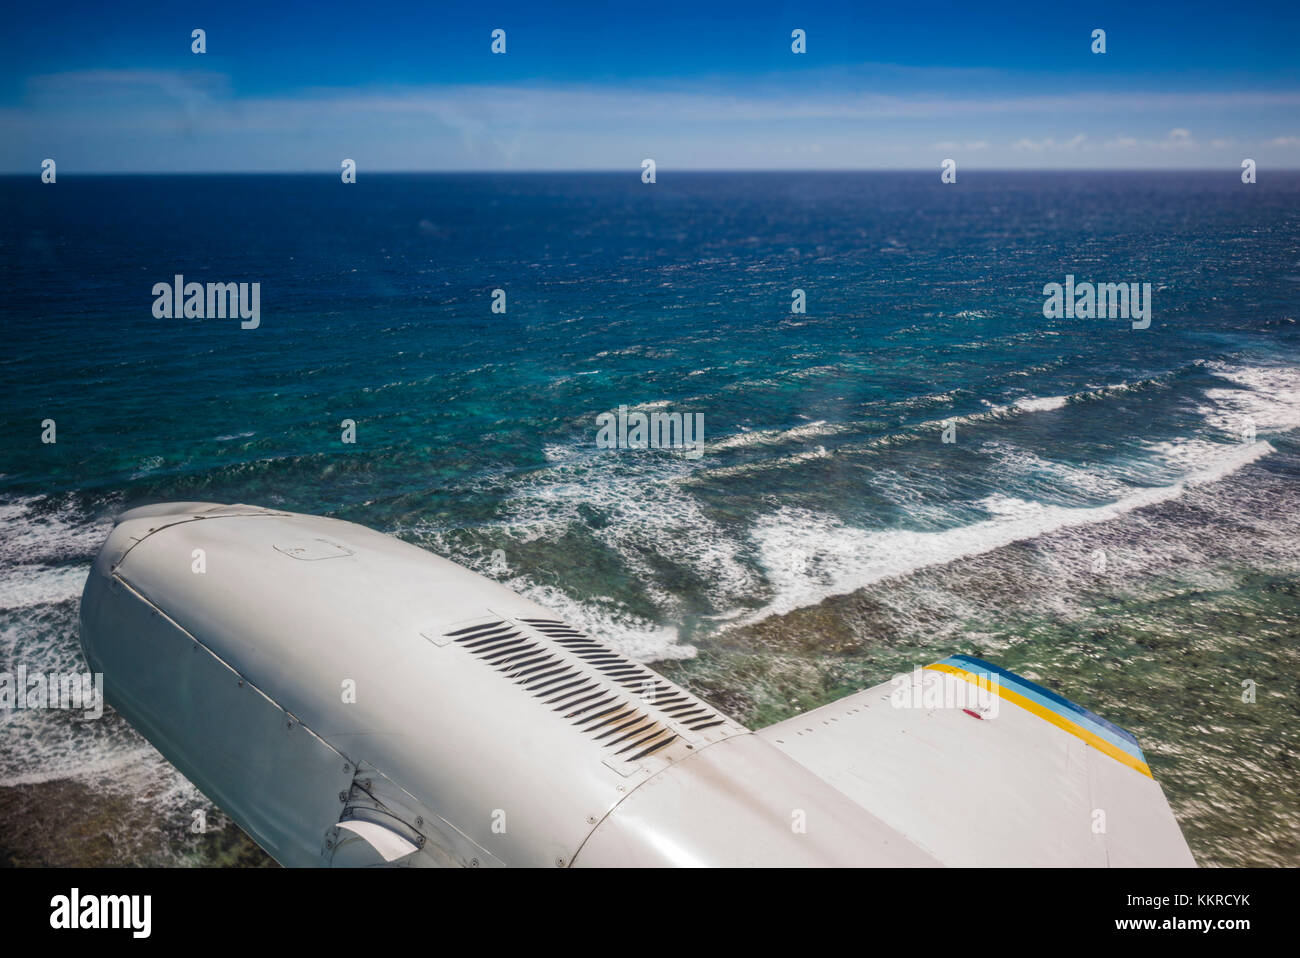 British Virgin Islands, Virgin Gorda, Taylors Bay, aerial view from propellor-driven aircraft - Stock Image